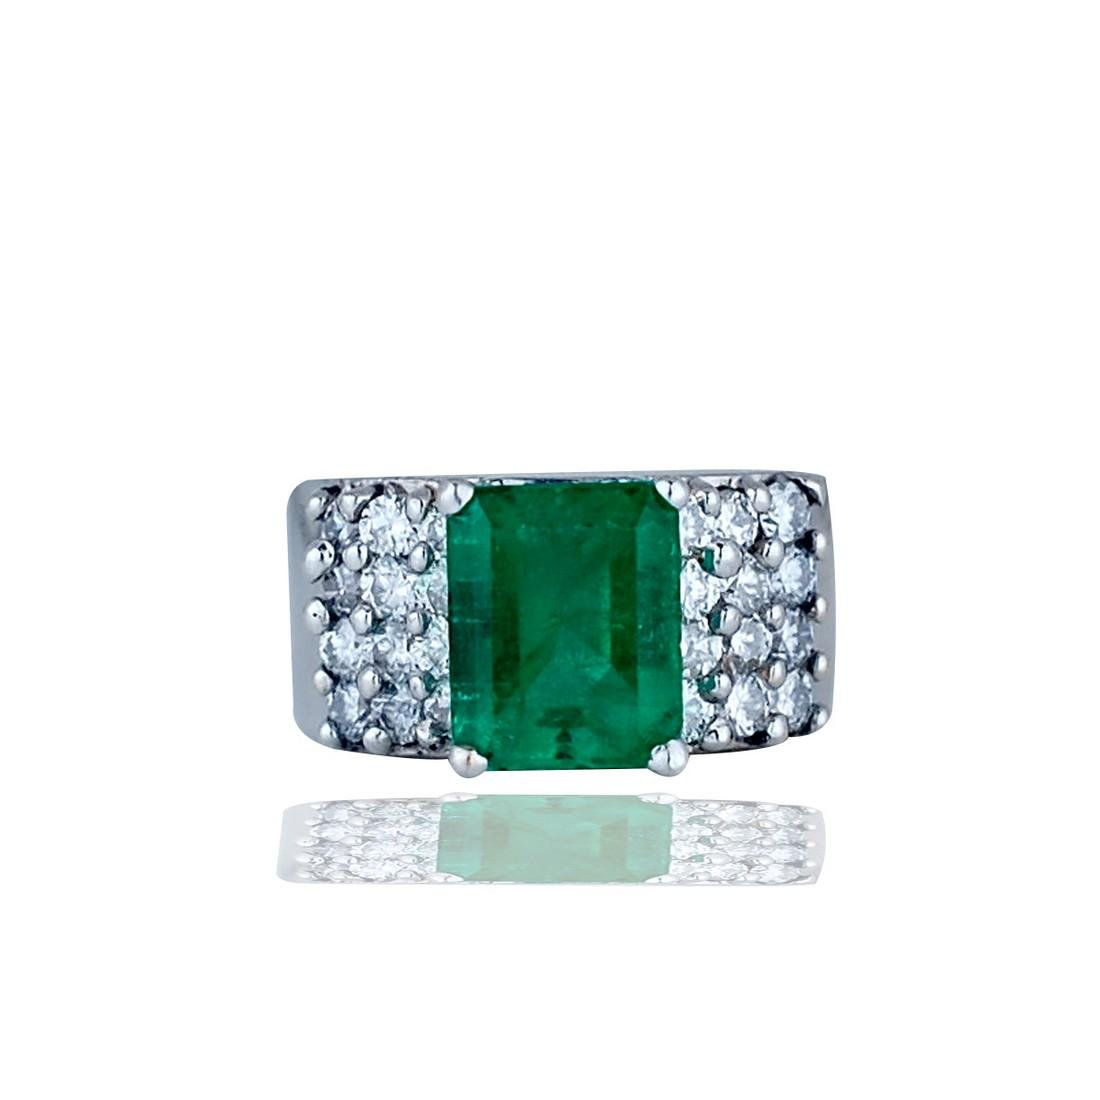 Large 3.50 carat Emerald with Diamond Wide Band 18